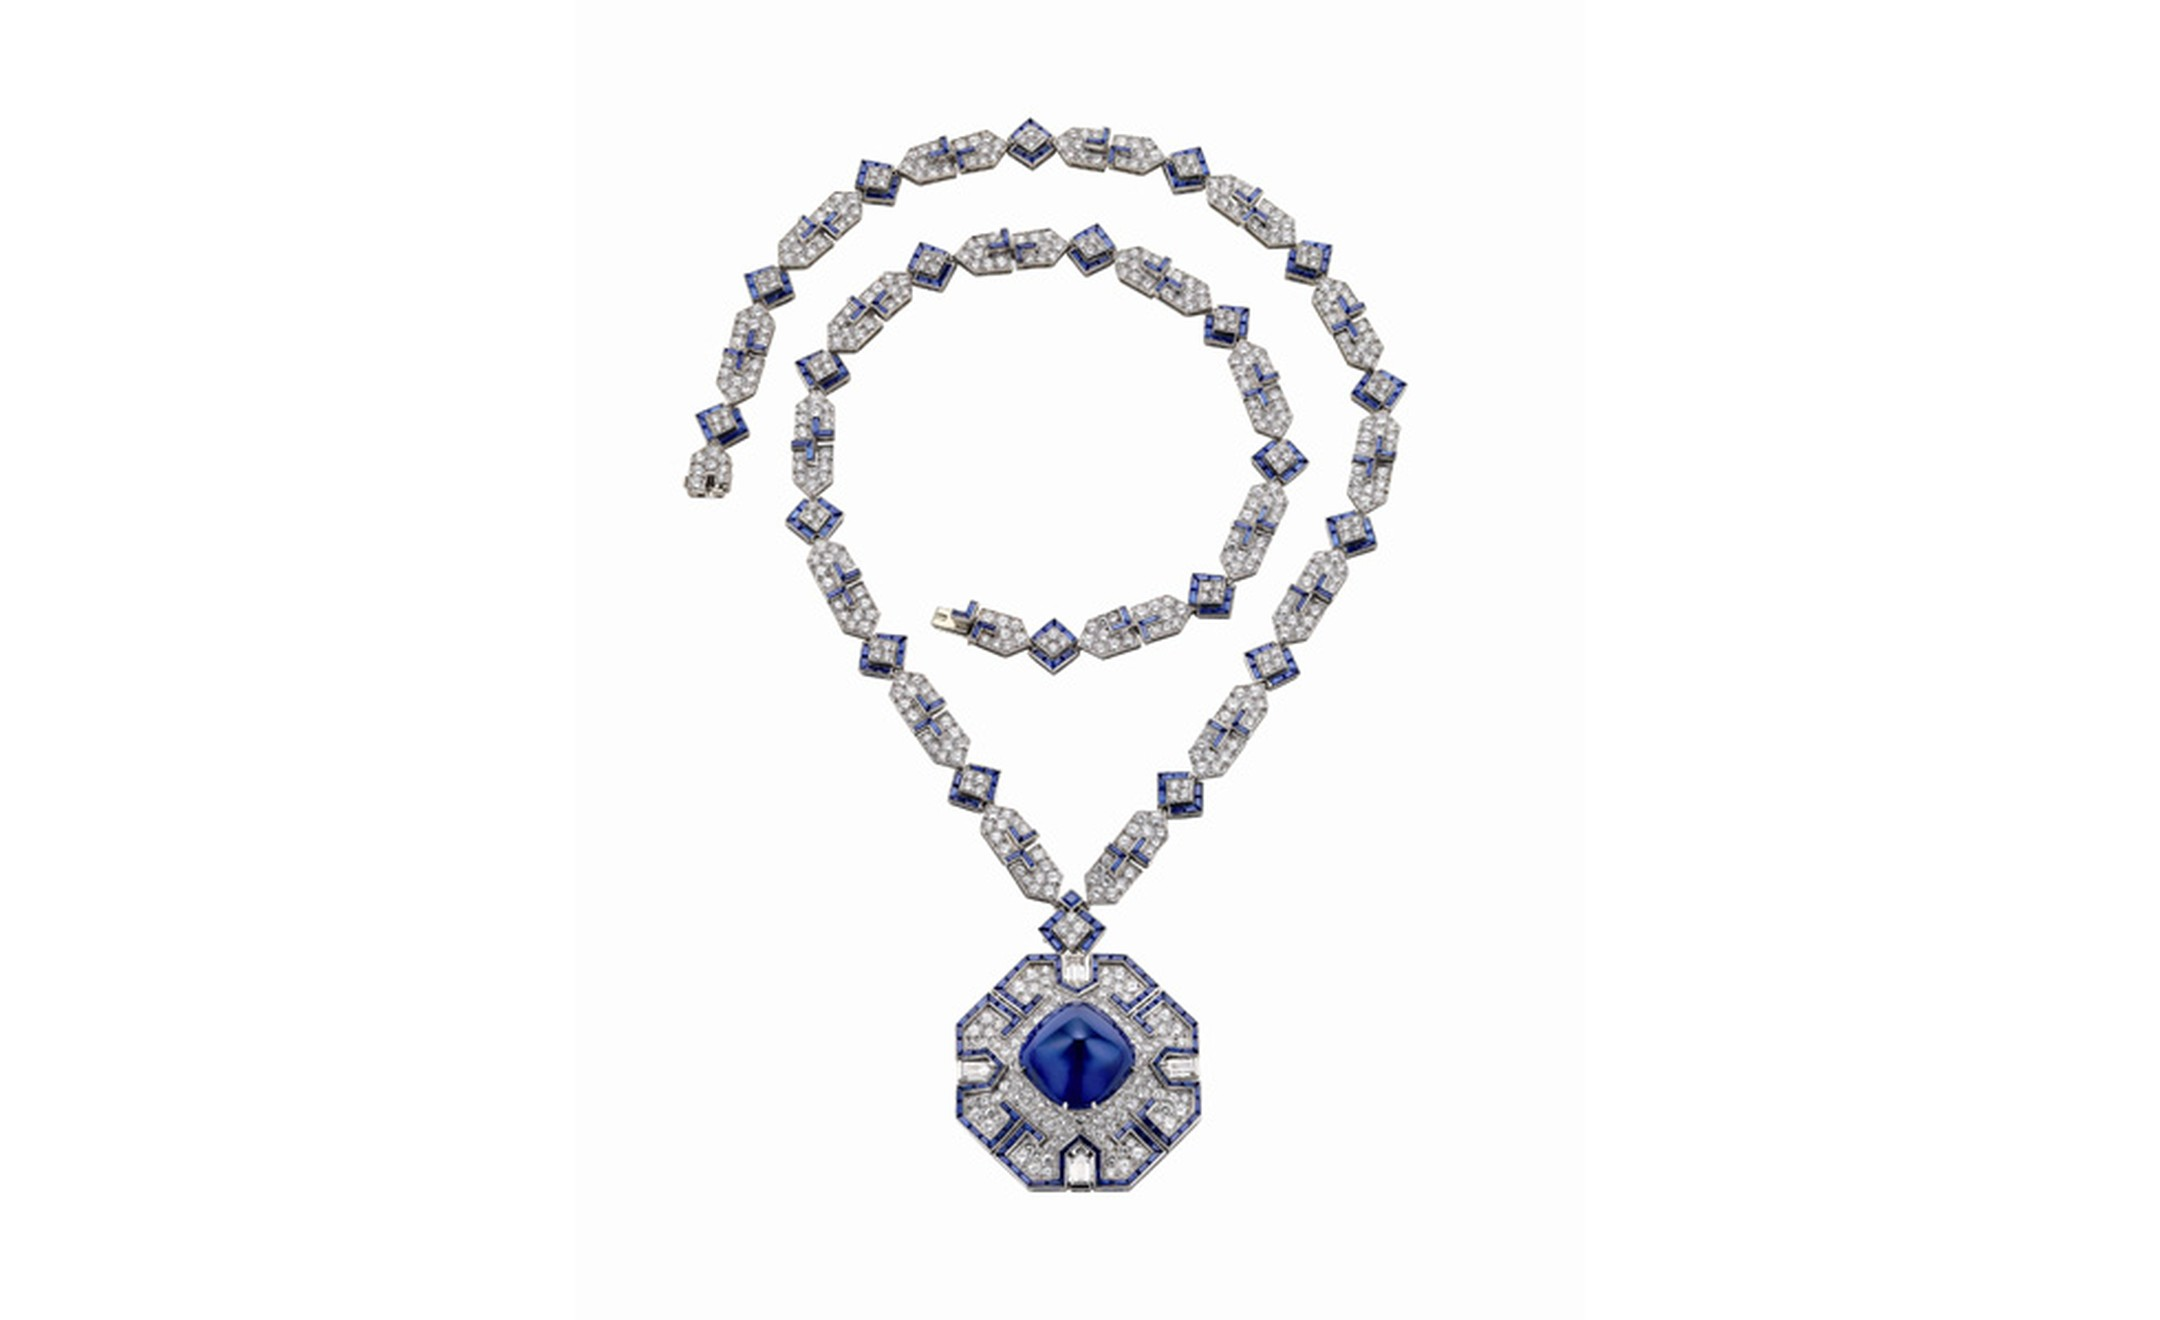 Bulgari sapphire and diamond necklace that belonged to Elizabeth Taylor. The sautoir is in platinum with sapphire and diamonds. The sugar-loaf cabochon sapphire of approximately 65 carats. The sautoir was given to Elizabeth Taylor by Richard Bur...